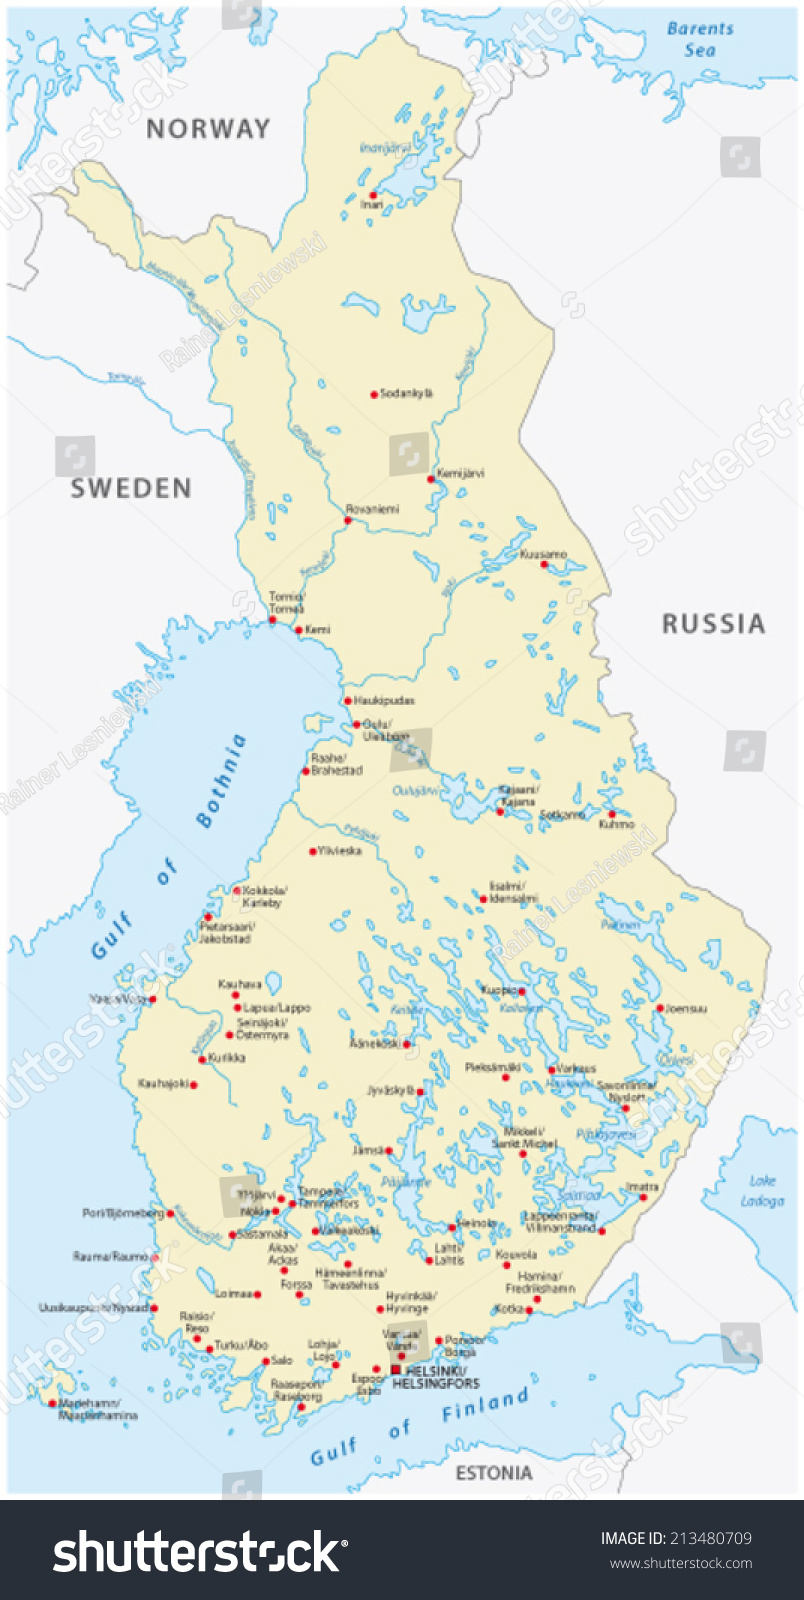 Finland Map Cities Finnish Swedish Language Stock Vector - Sweden map of cities